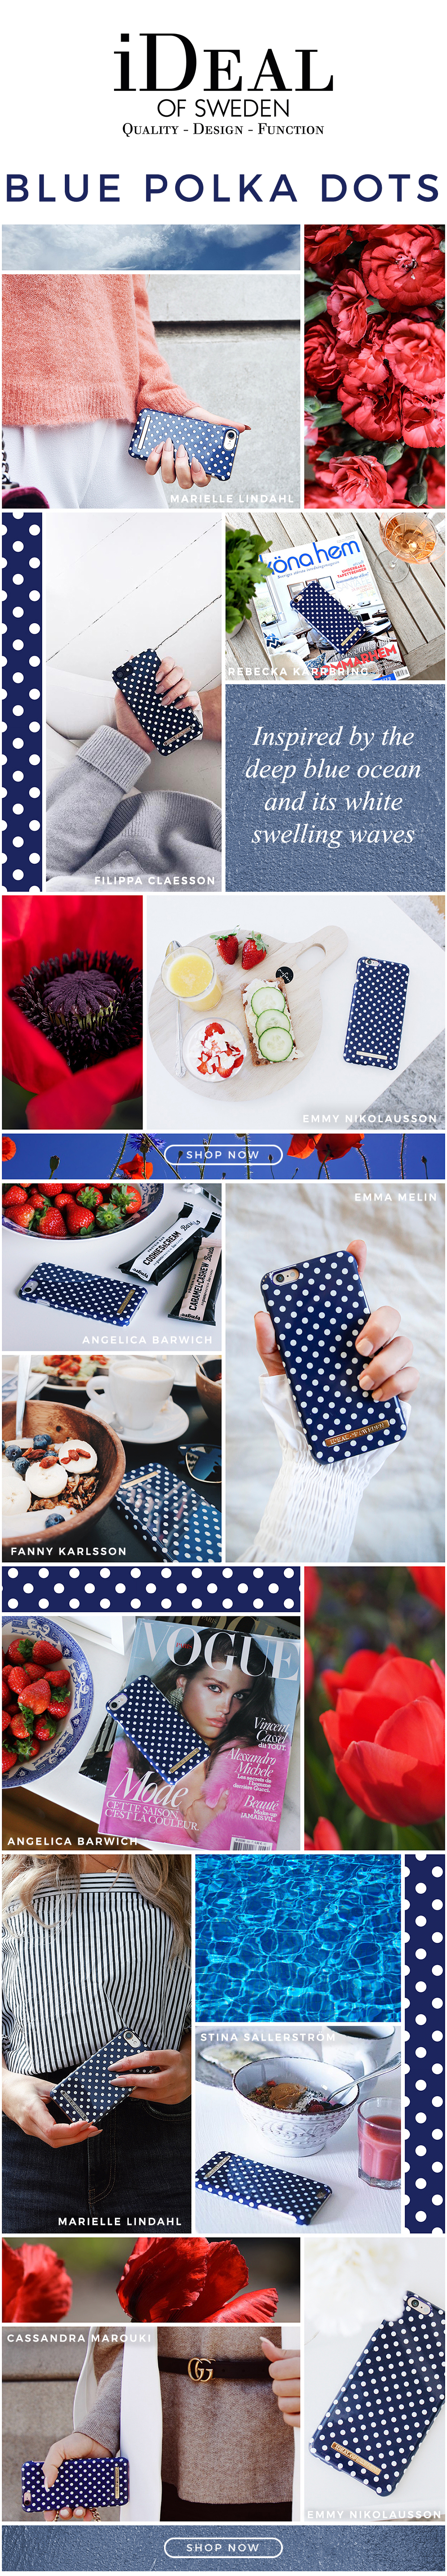 Newsletter iDeal of Sweden - Blue Polka Dots #design #layout #nyhetsbrev